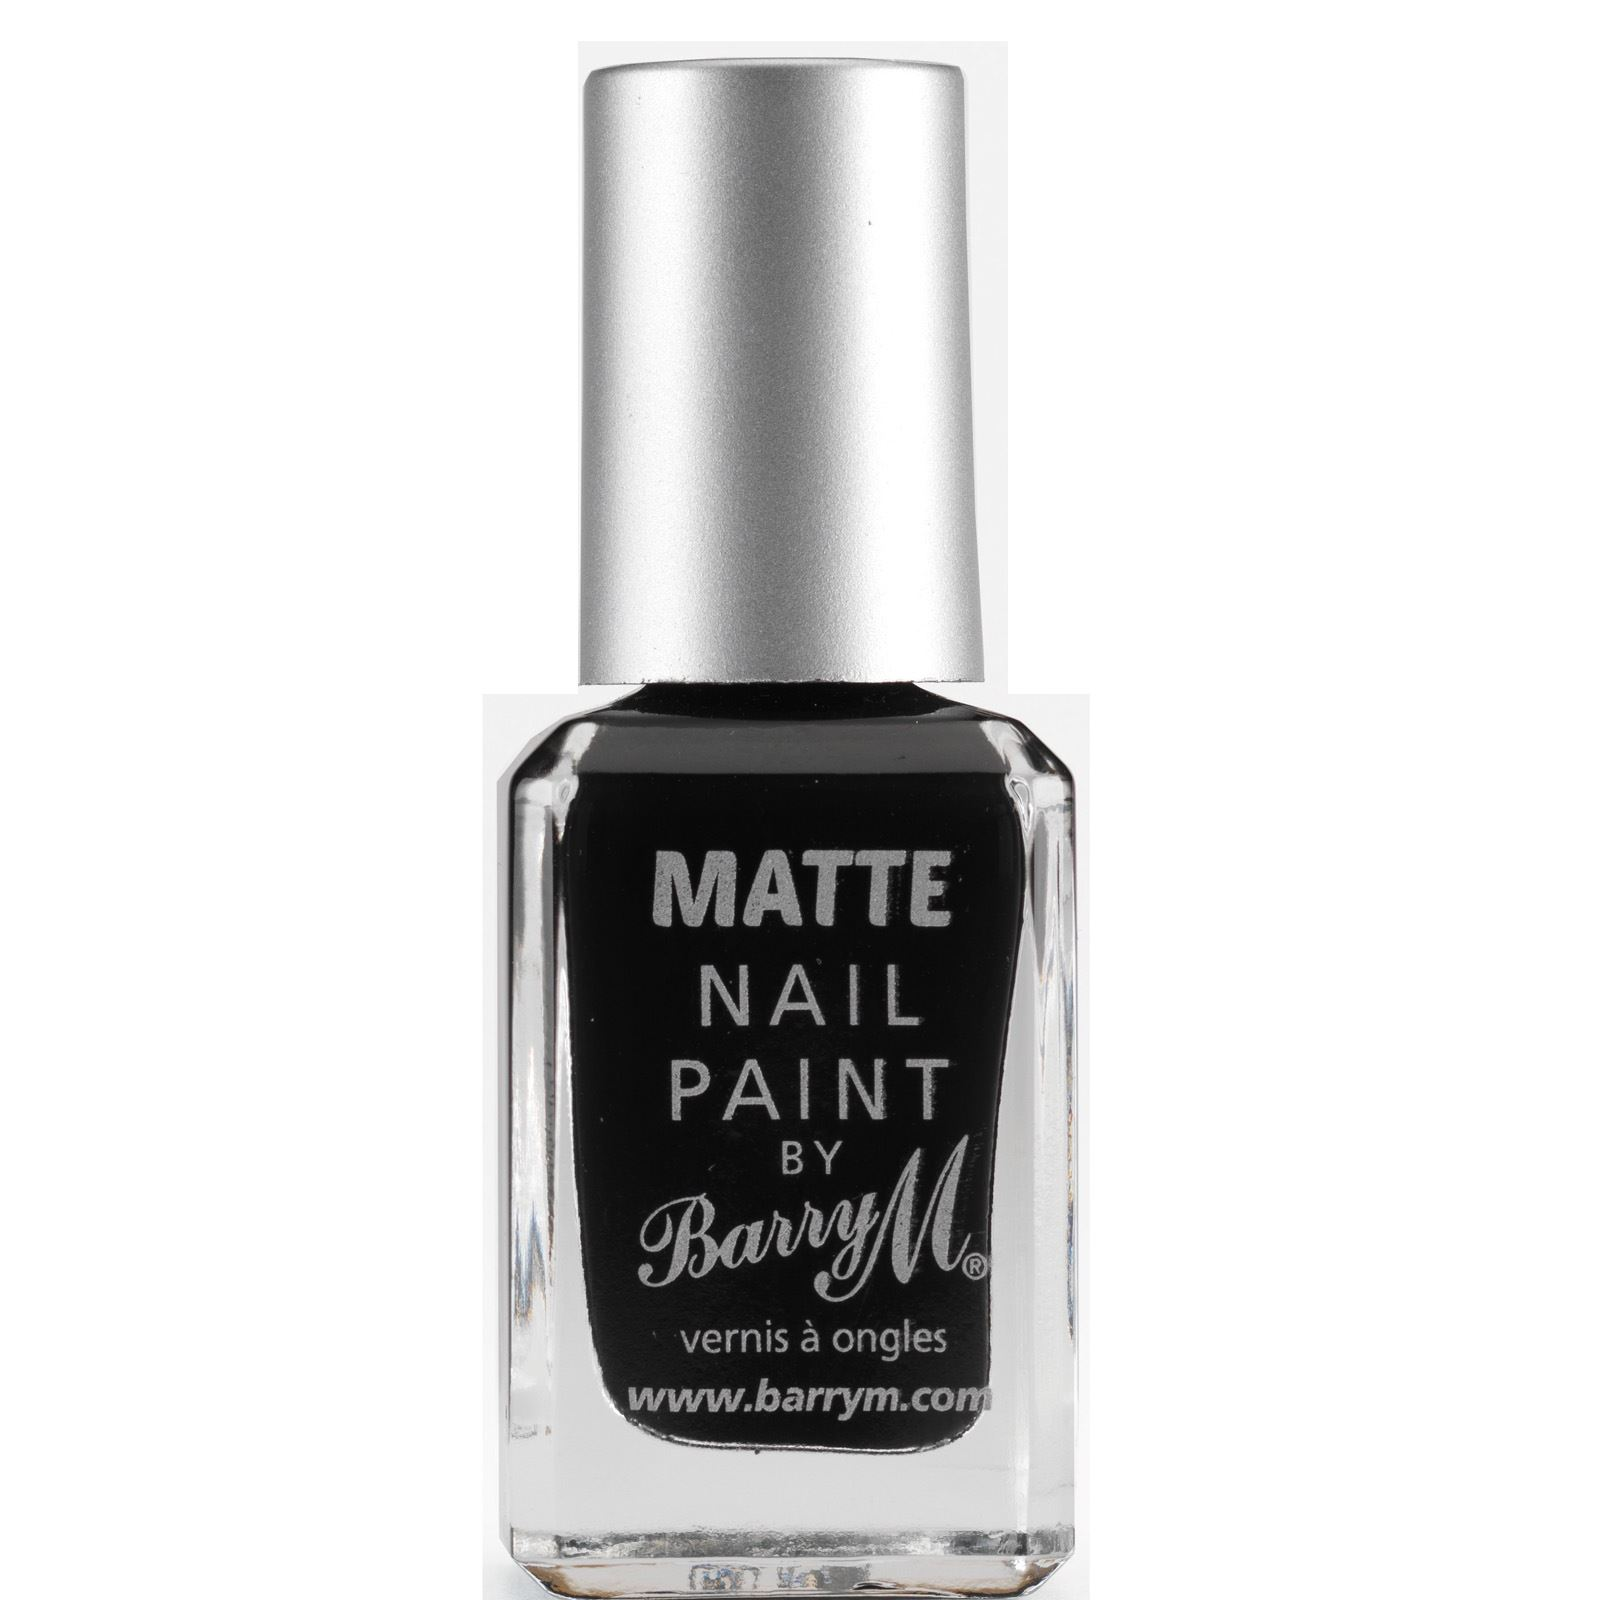 BARRY M NAIL PAINT MATTE SMOOTH NON GLOSSY FINISH VARNISH POLISH ALL ...